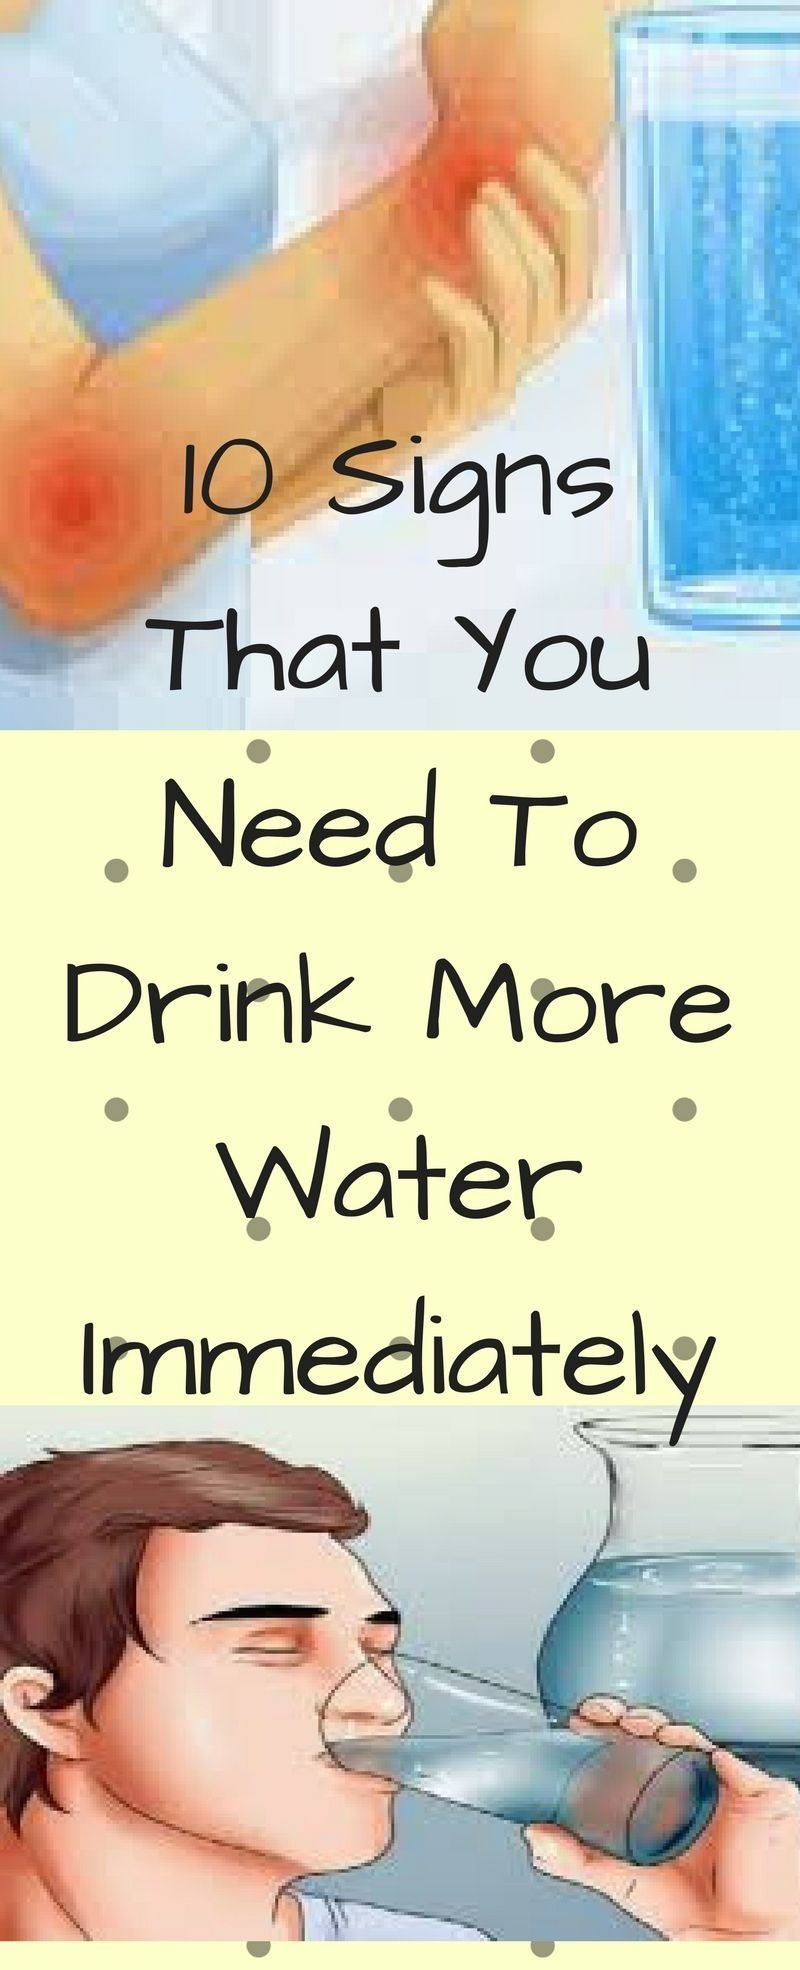 signs that you need to drink more water immediately